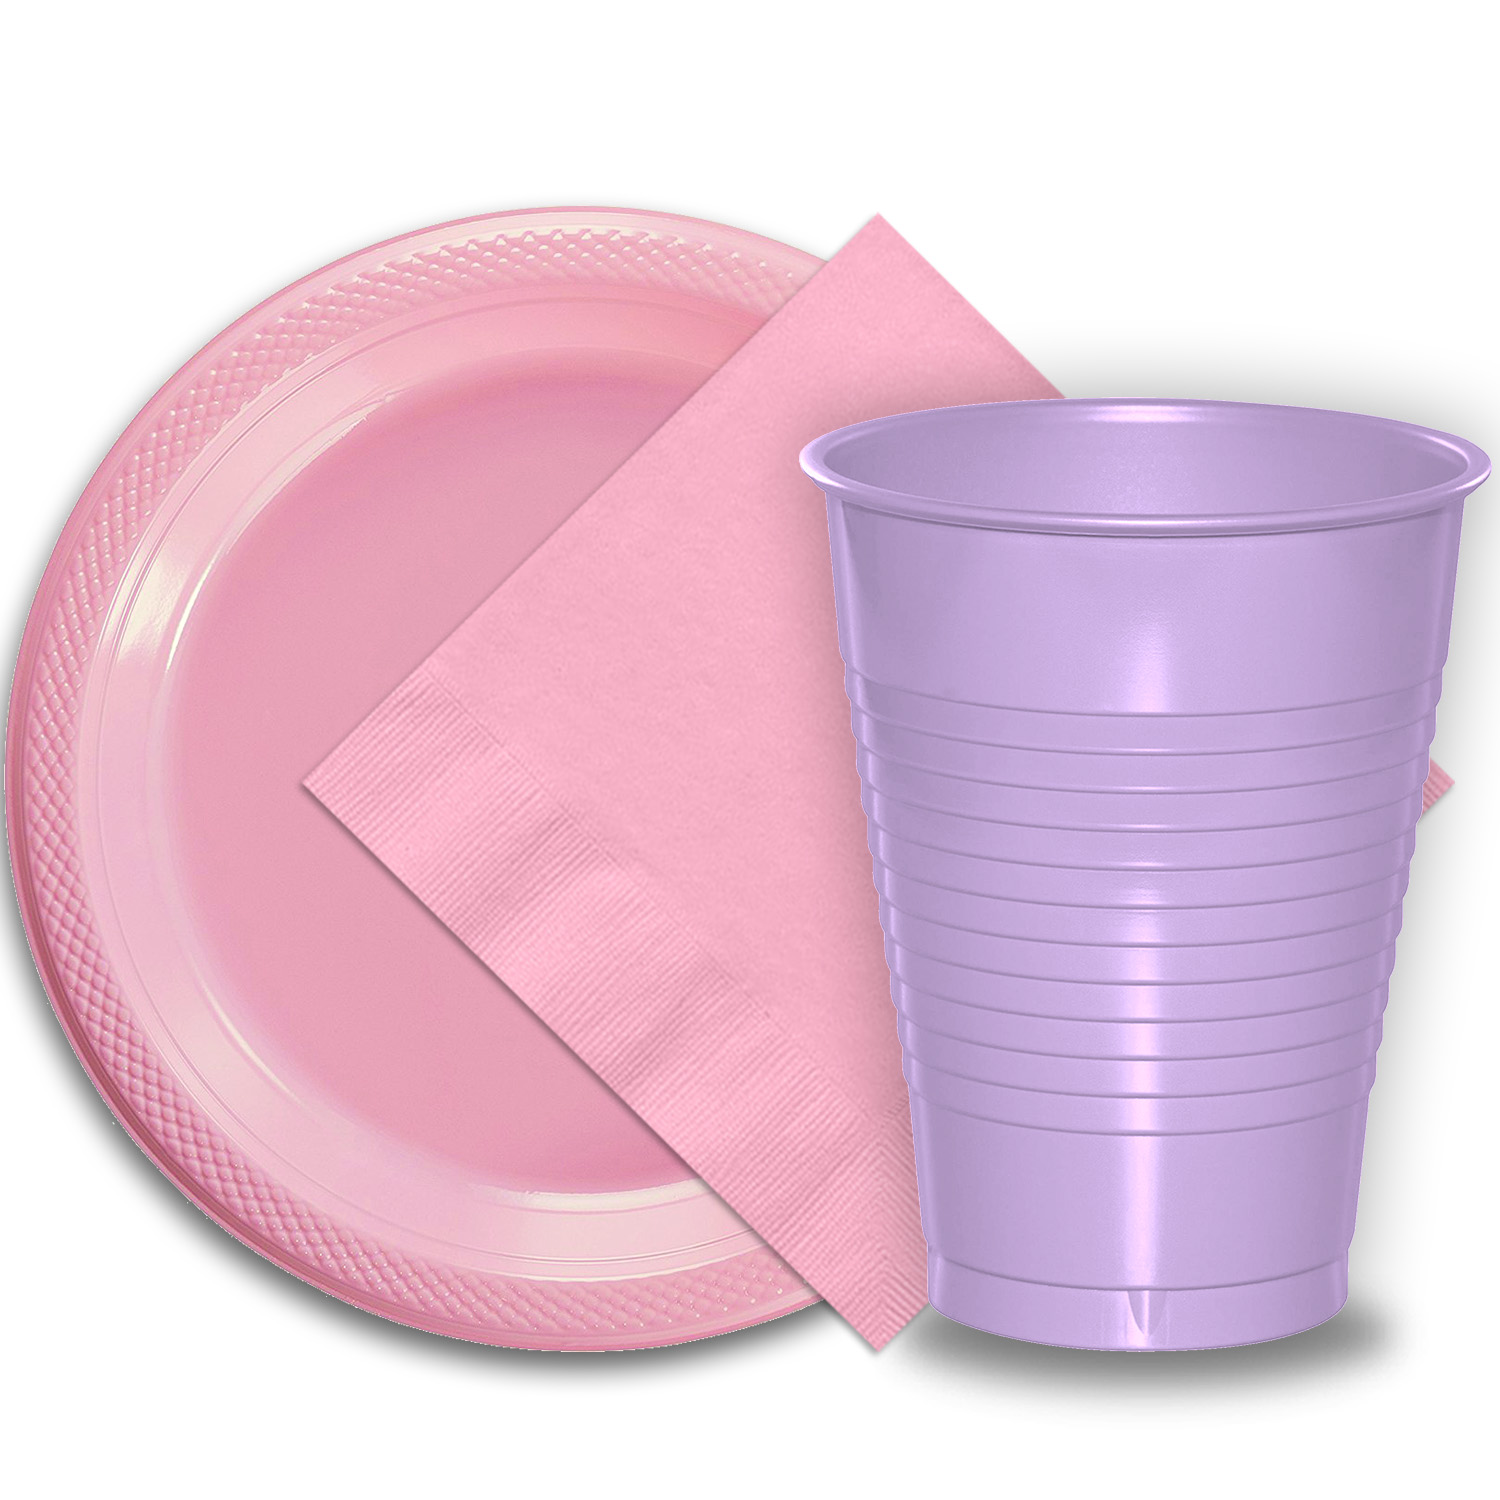 """50 Pink Plastic Plates (9""""), 50 Lavender Plastic Cups (12 oz.), and 50 Pink Paper Napkins, Dazzelling Colored Disposable Party Supplies Tableware Set for Fifty Guests."""